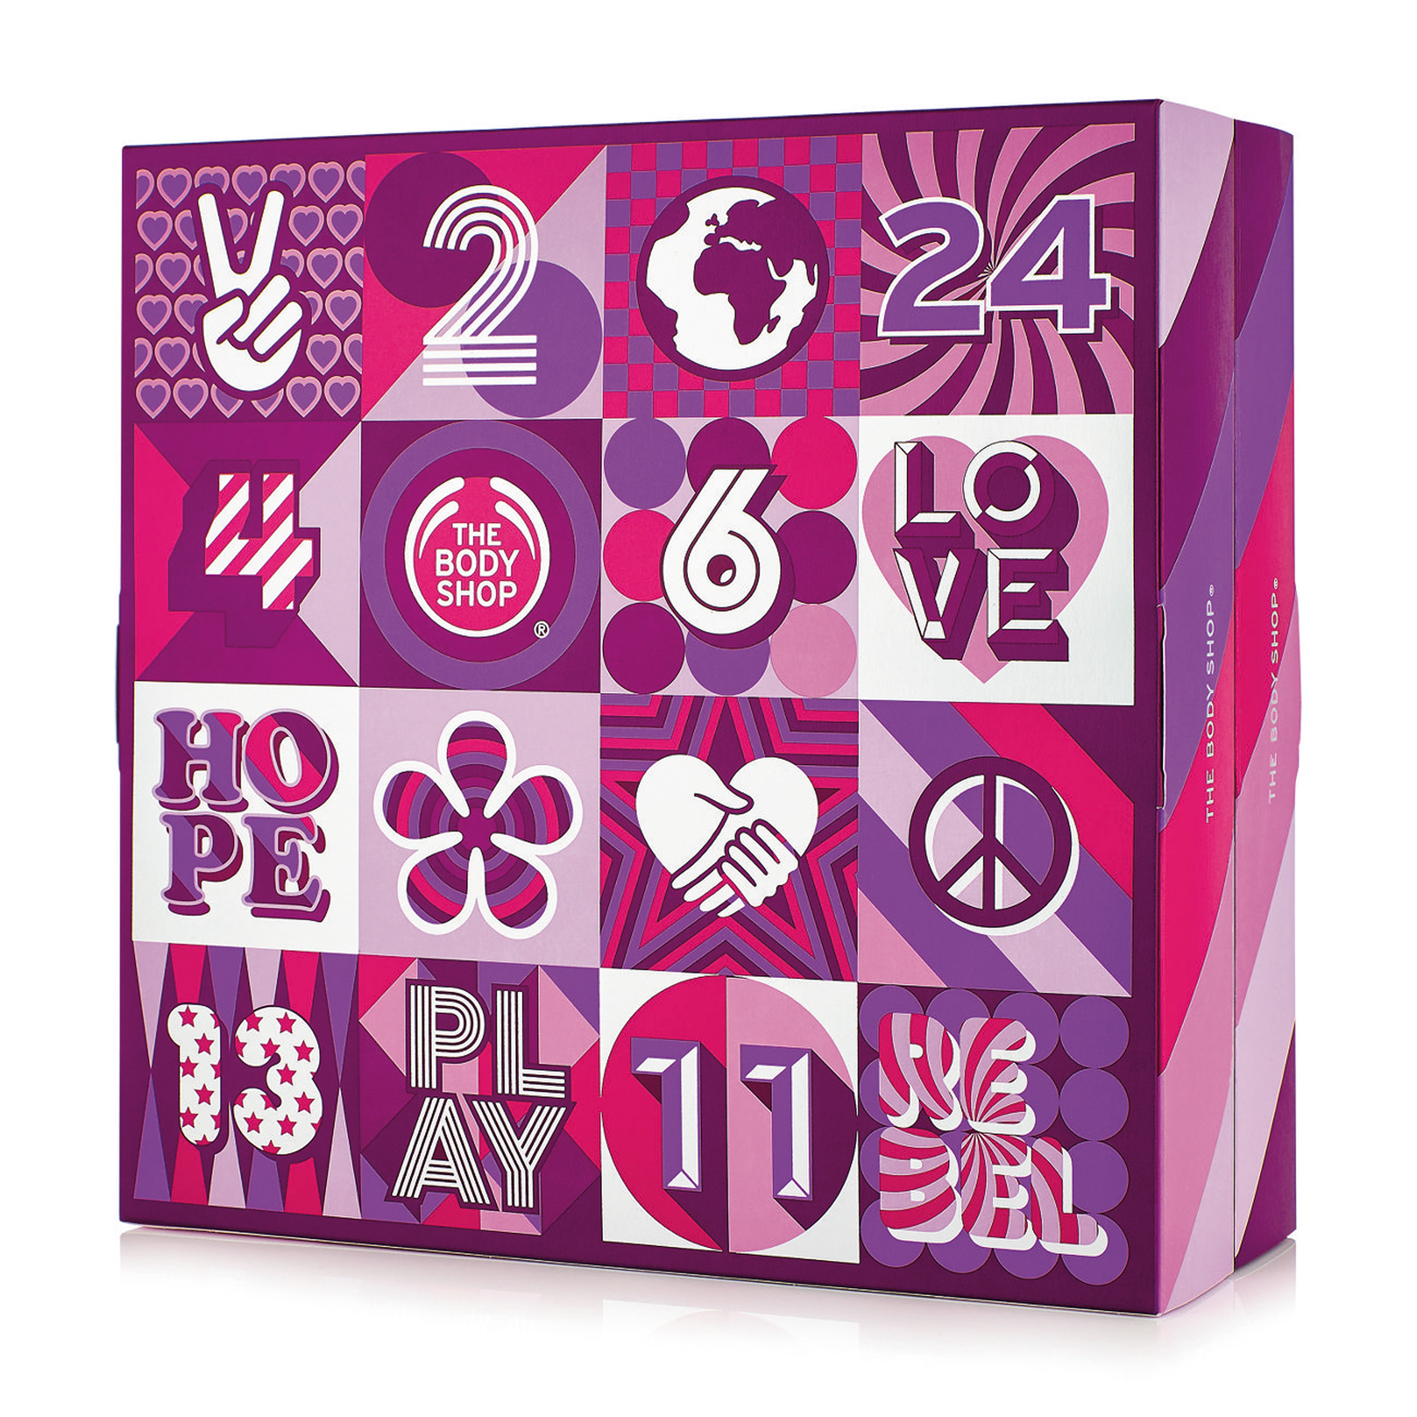 Picture of The Body Shop's Advent calendar